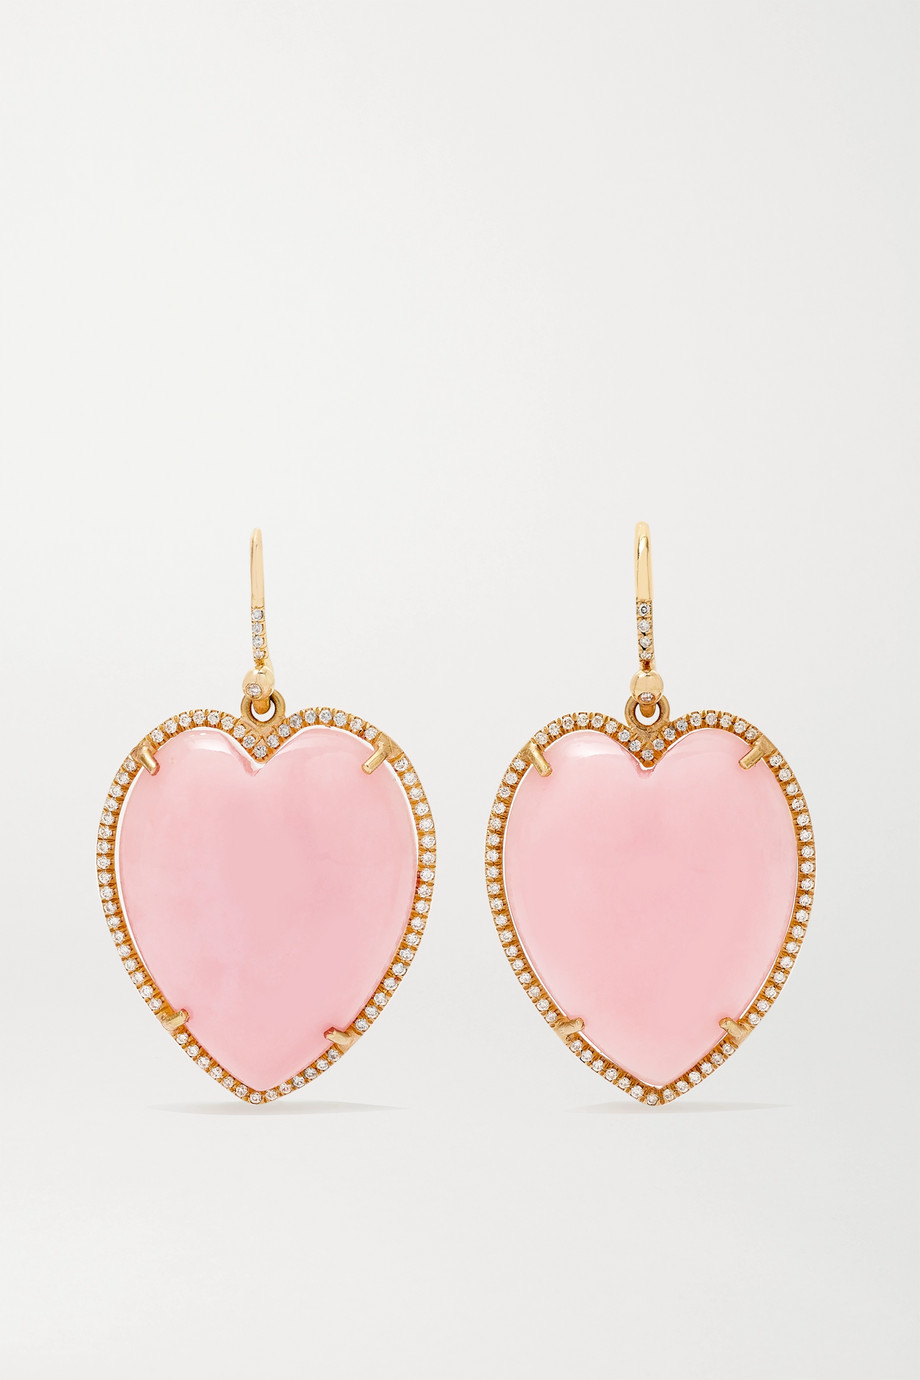 Irene Neuwirth Love 18-karat rose gold, opal and diamond earrings